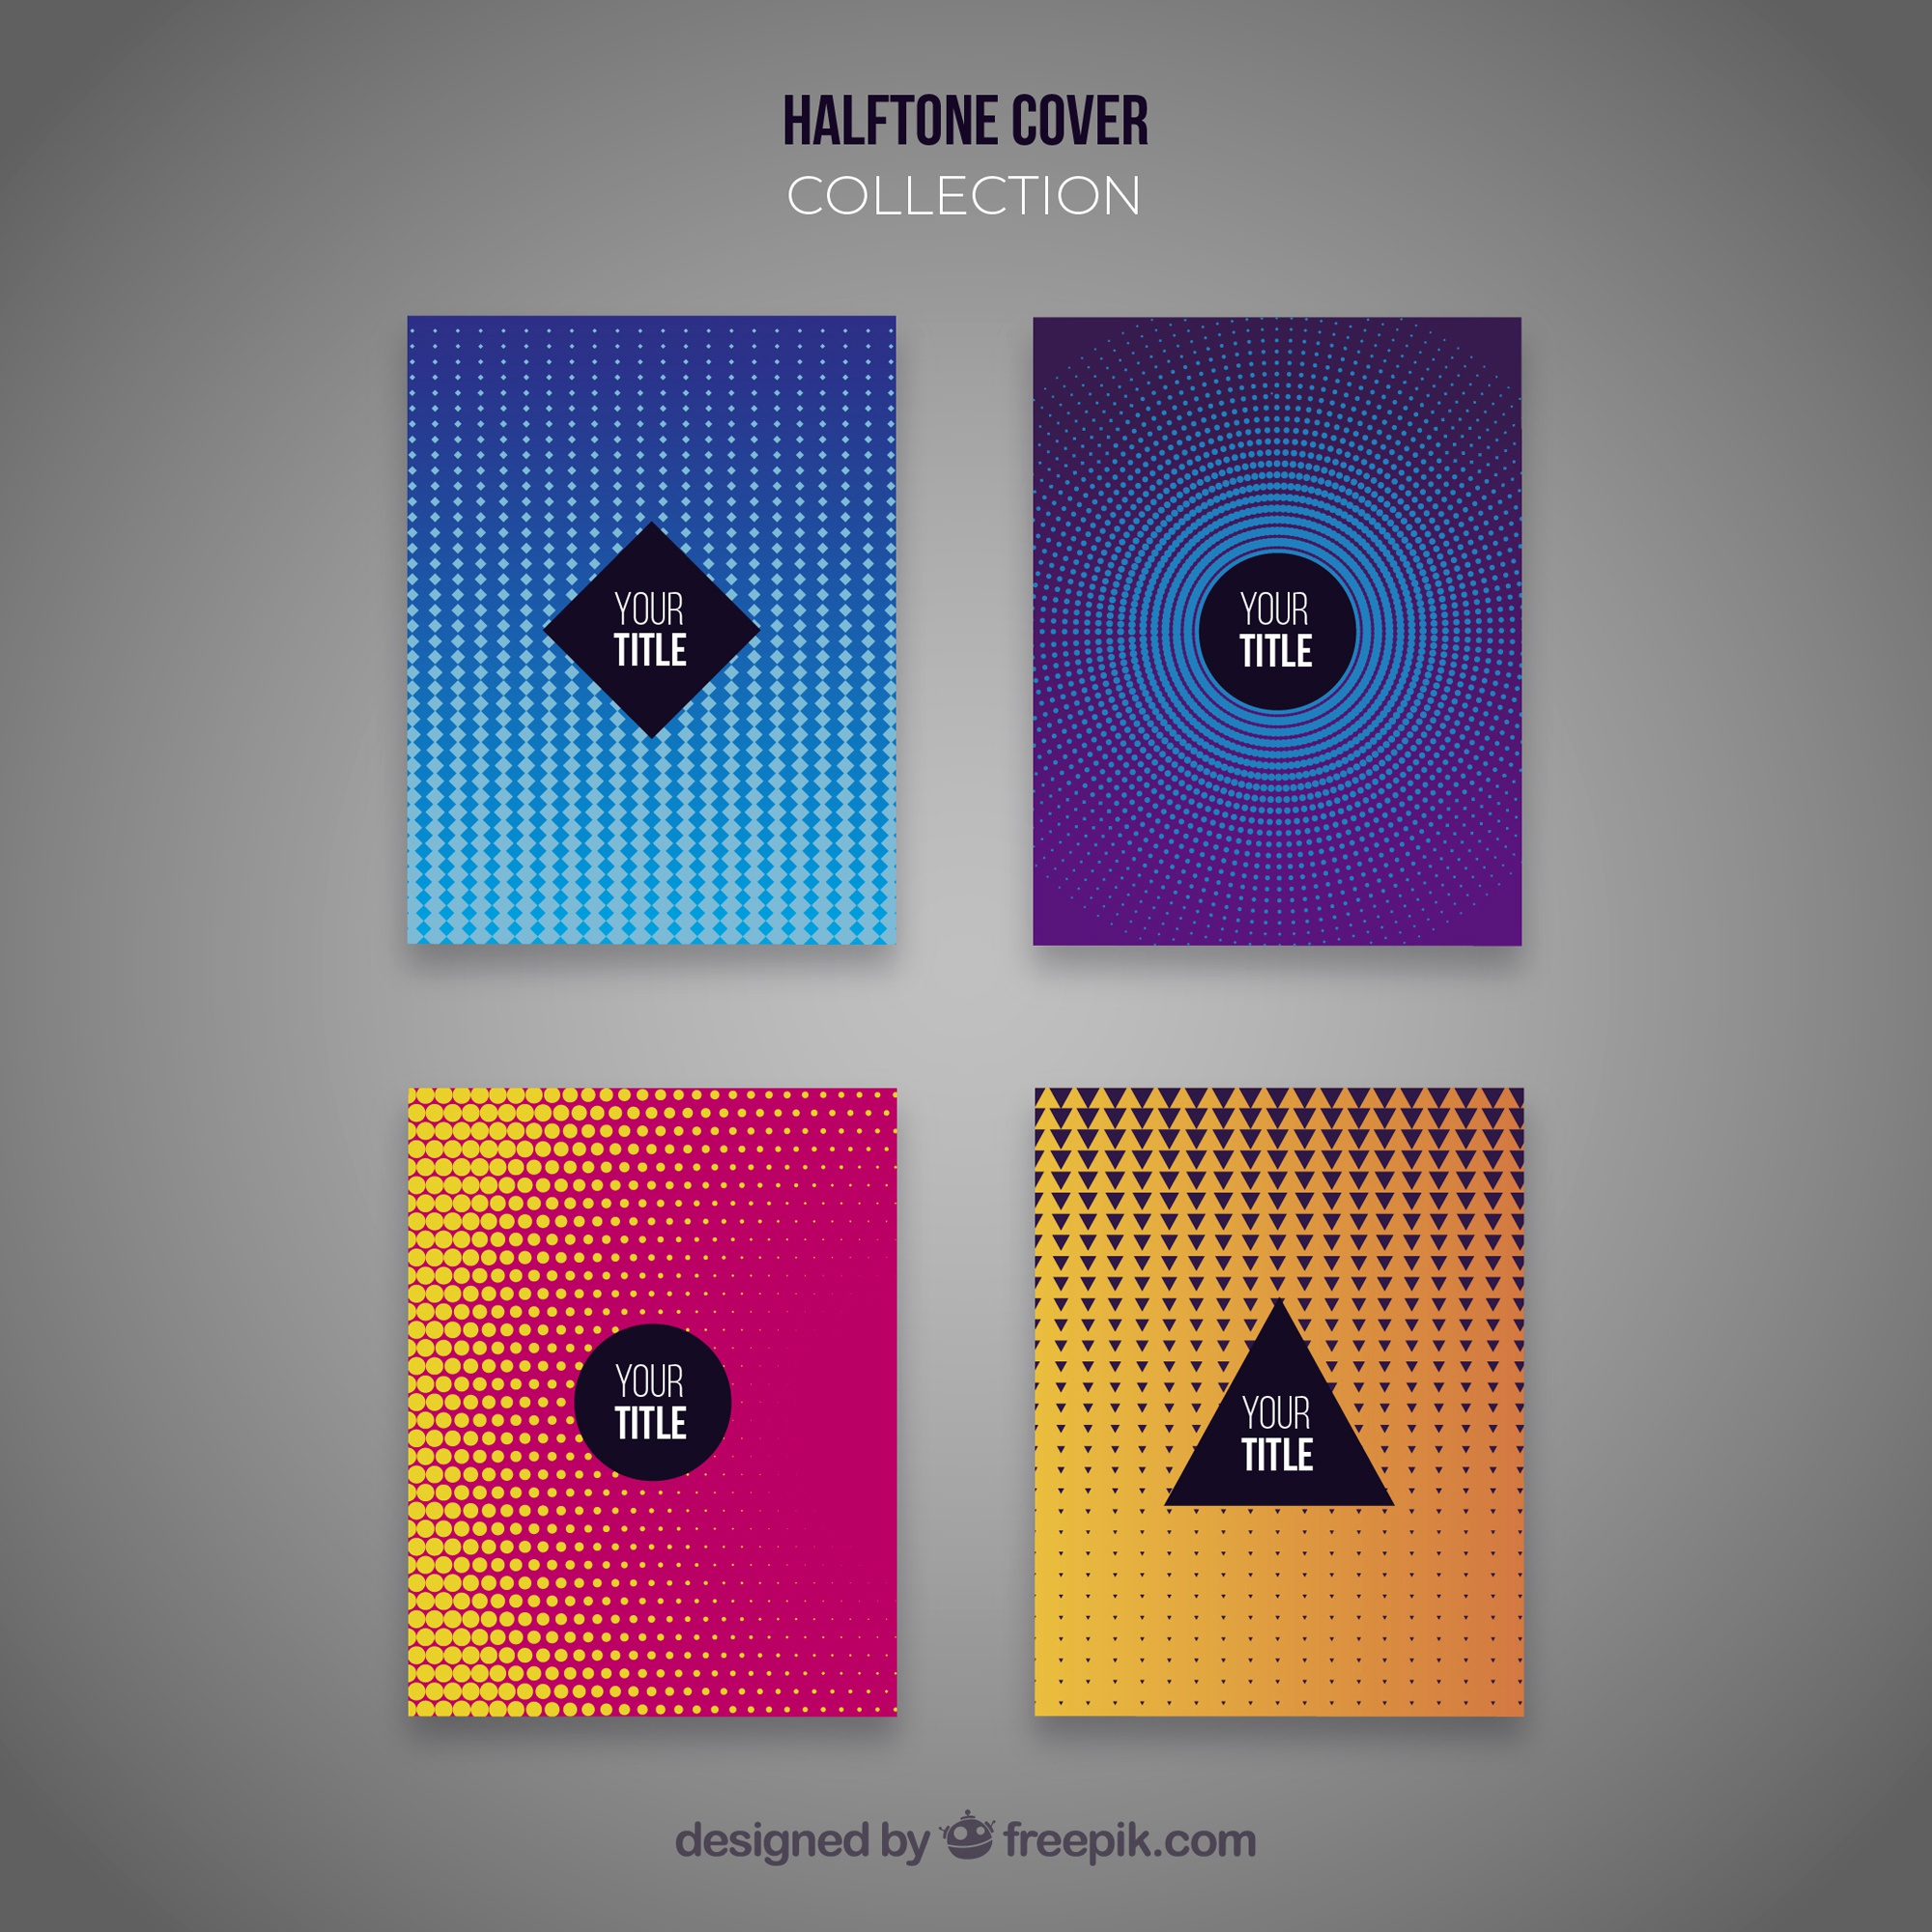 Abstract cover collection with halftone patterns